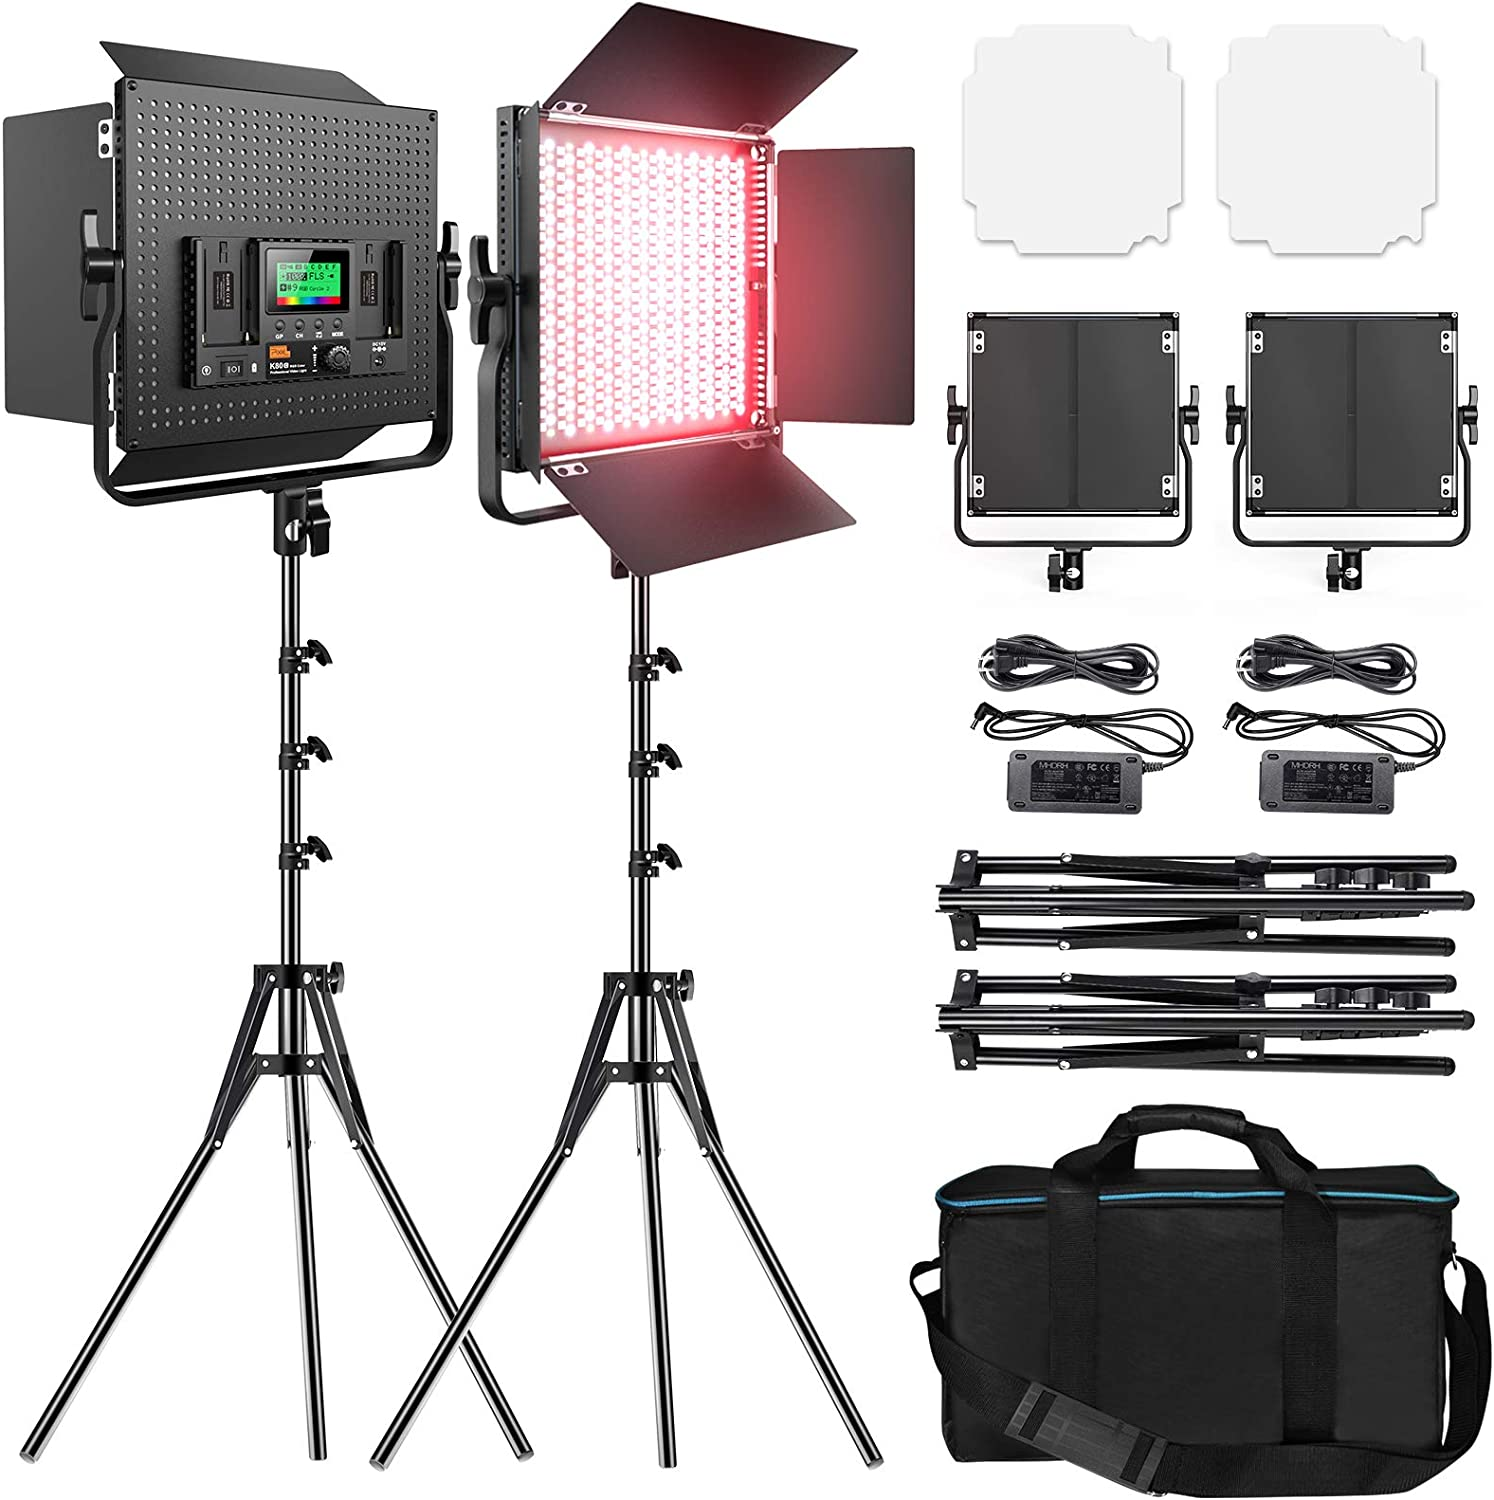 RGB Max 54% OFF Led Photography Lighting Pixel 2 Full Video Color Packs store